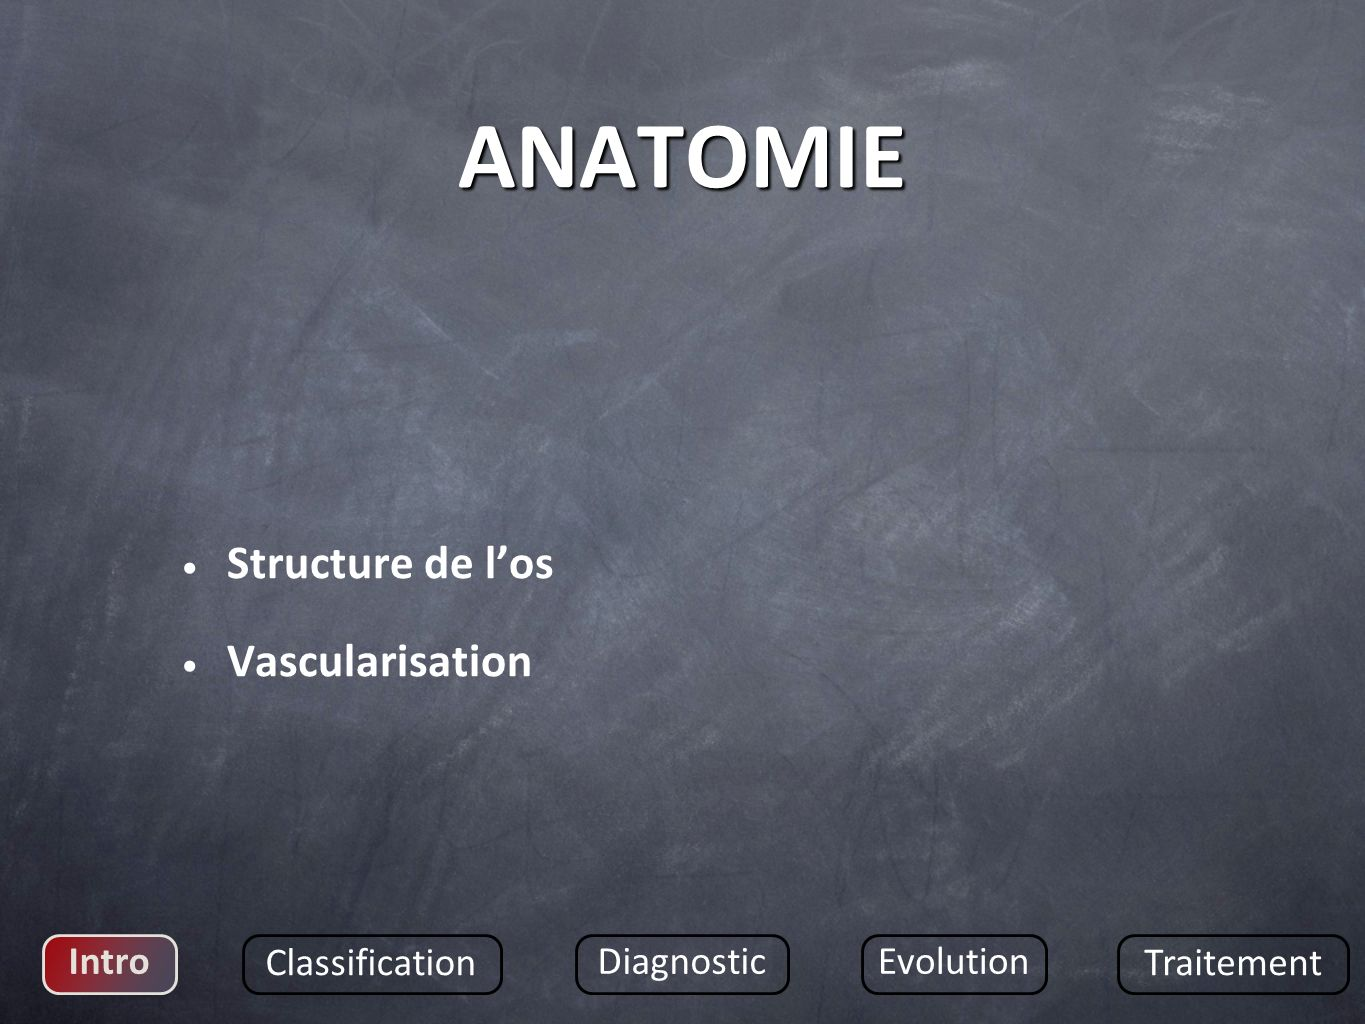 ANATOMIE Structure de l'os Vascularisation Intro Classification